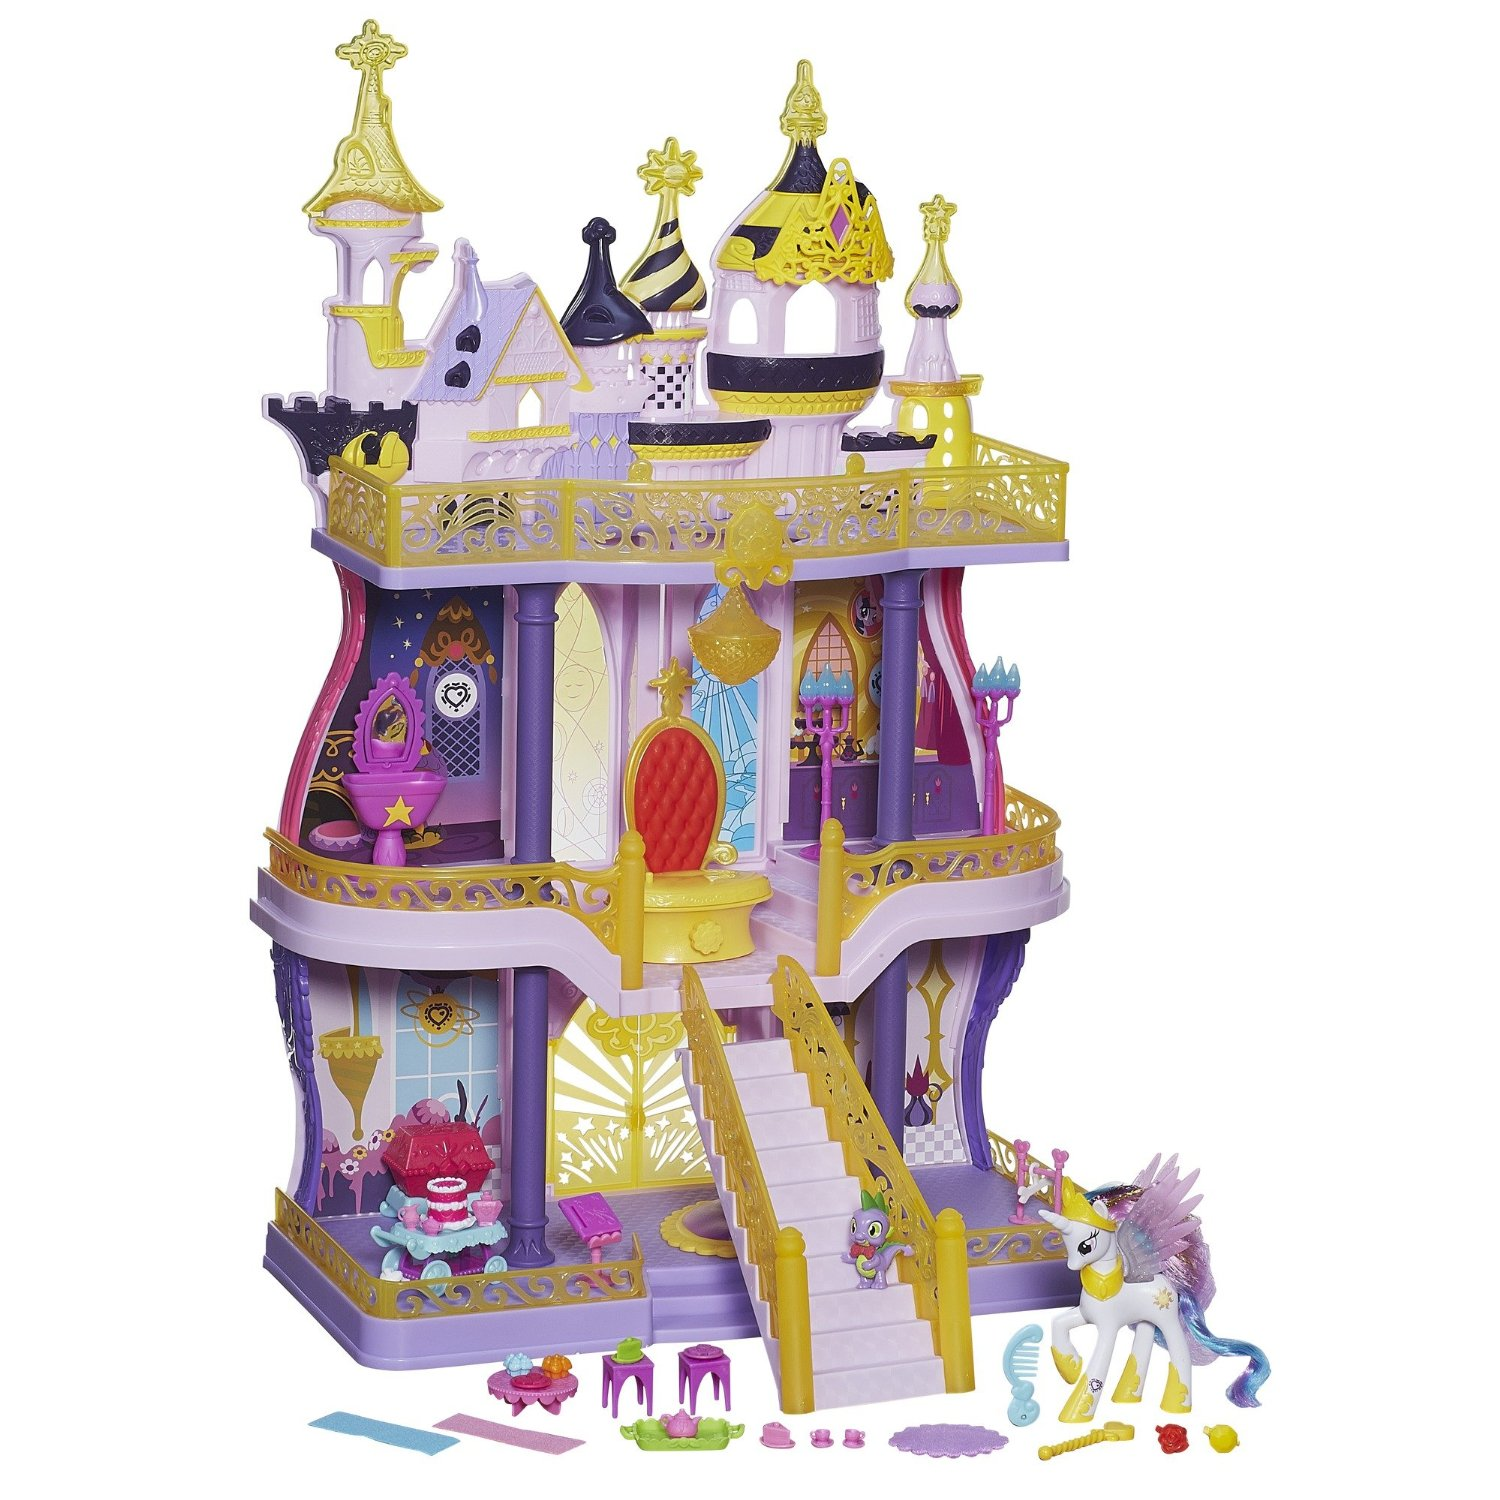 Best Castle Toys For Kids : Canterlot castle playset available on french amazon mlp